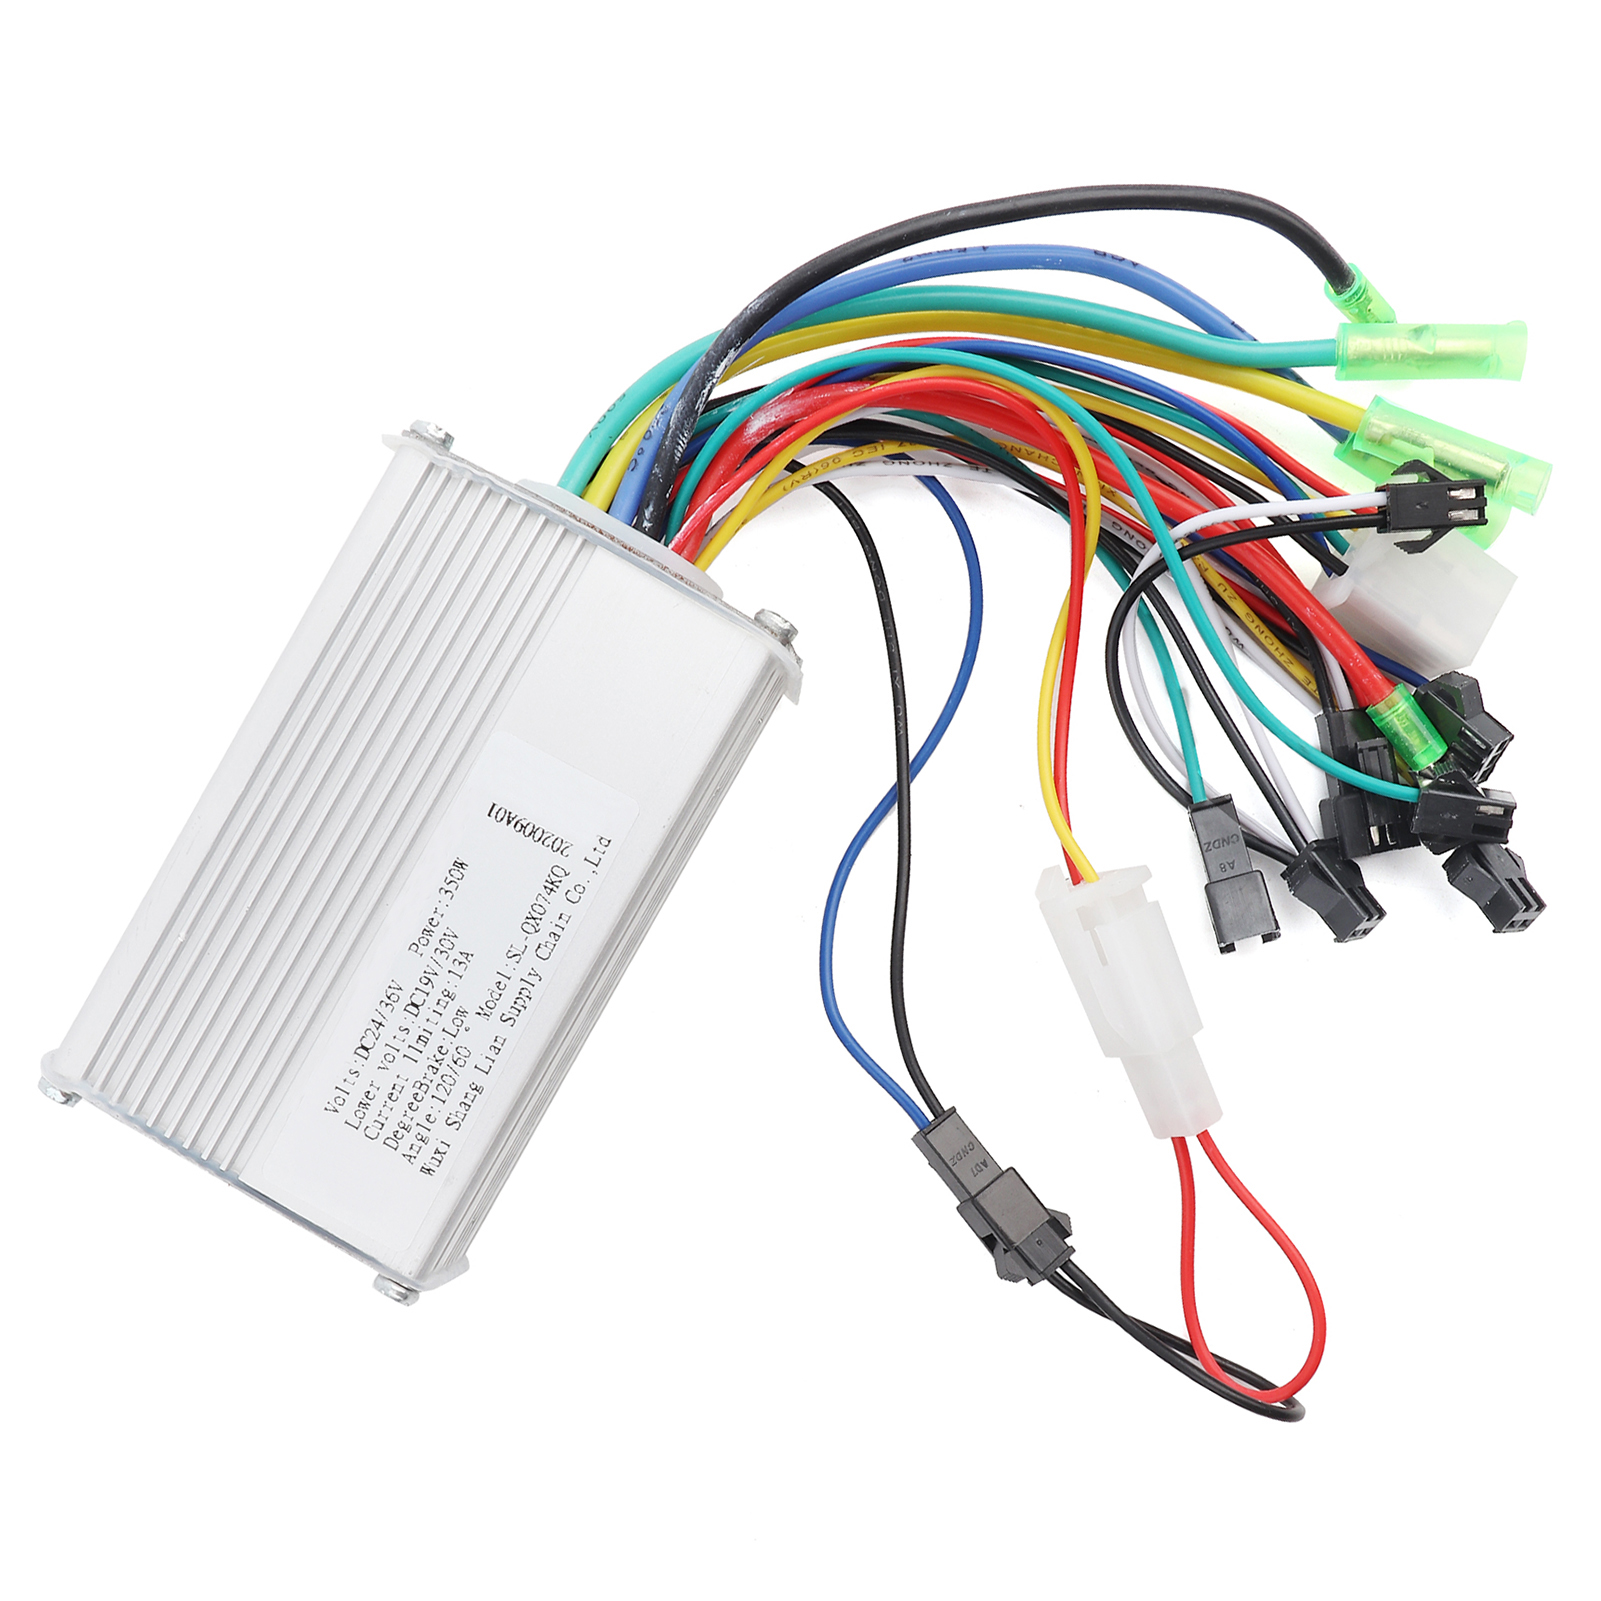 24v 350w Electric Bicycle E Bike Scooter Brushless Dc Motor Wiring